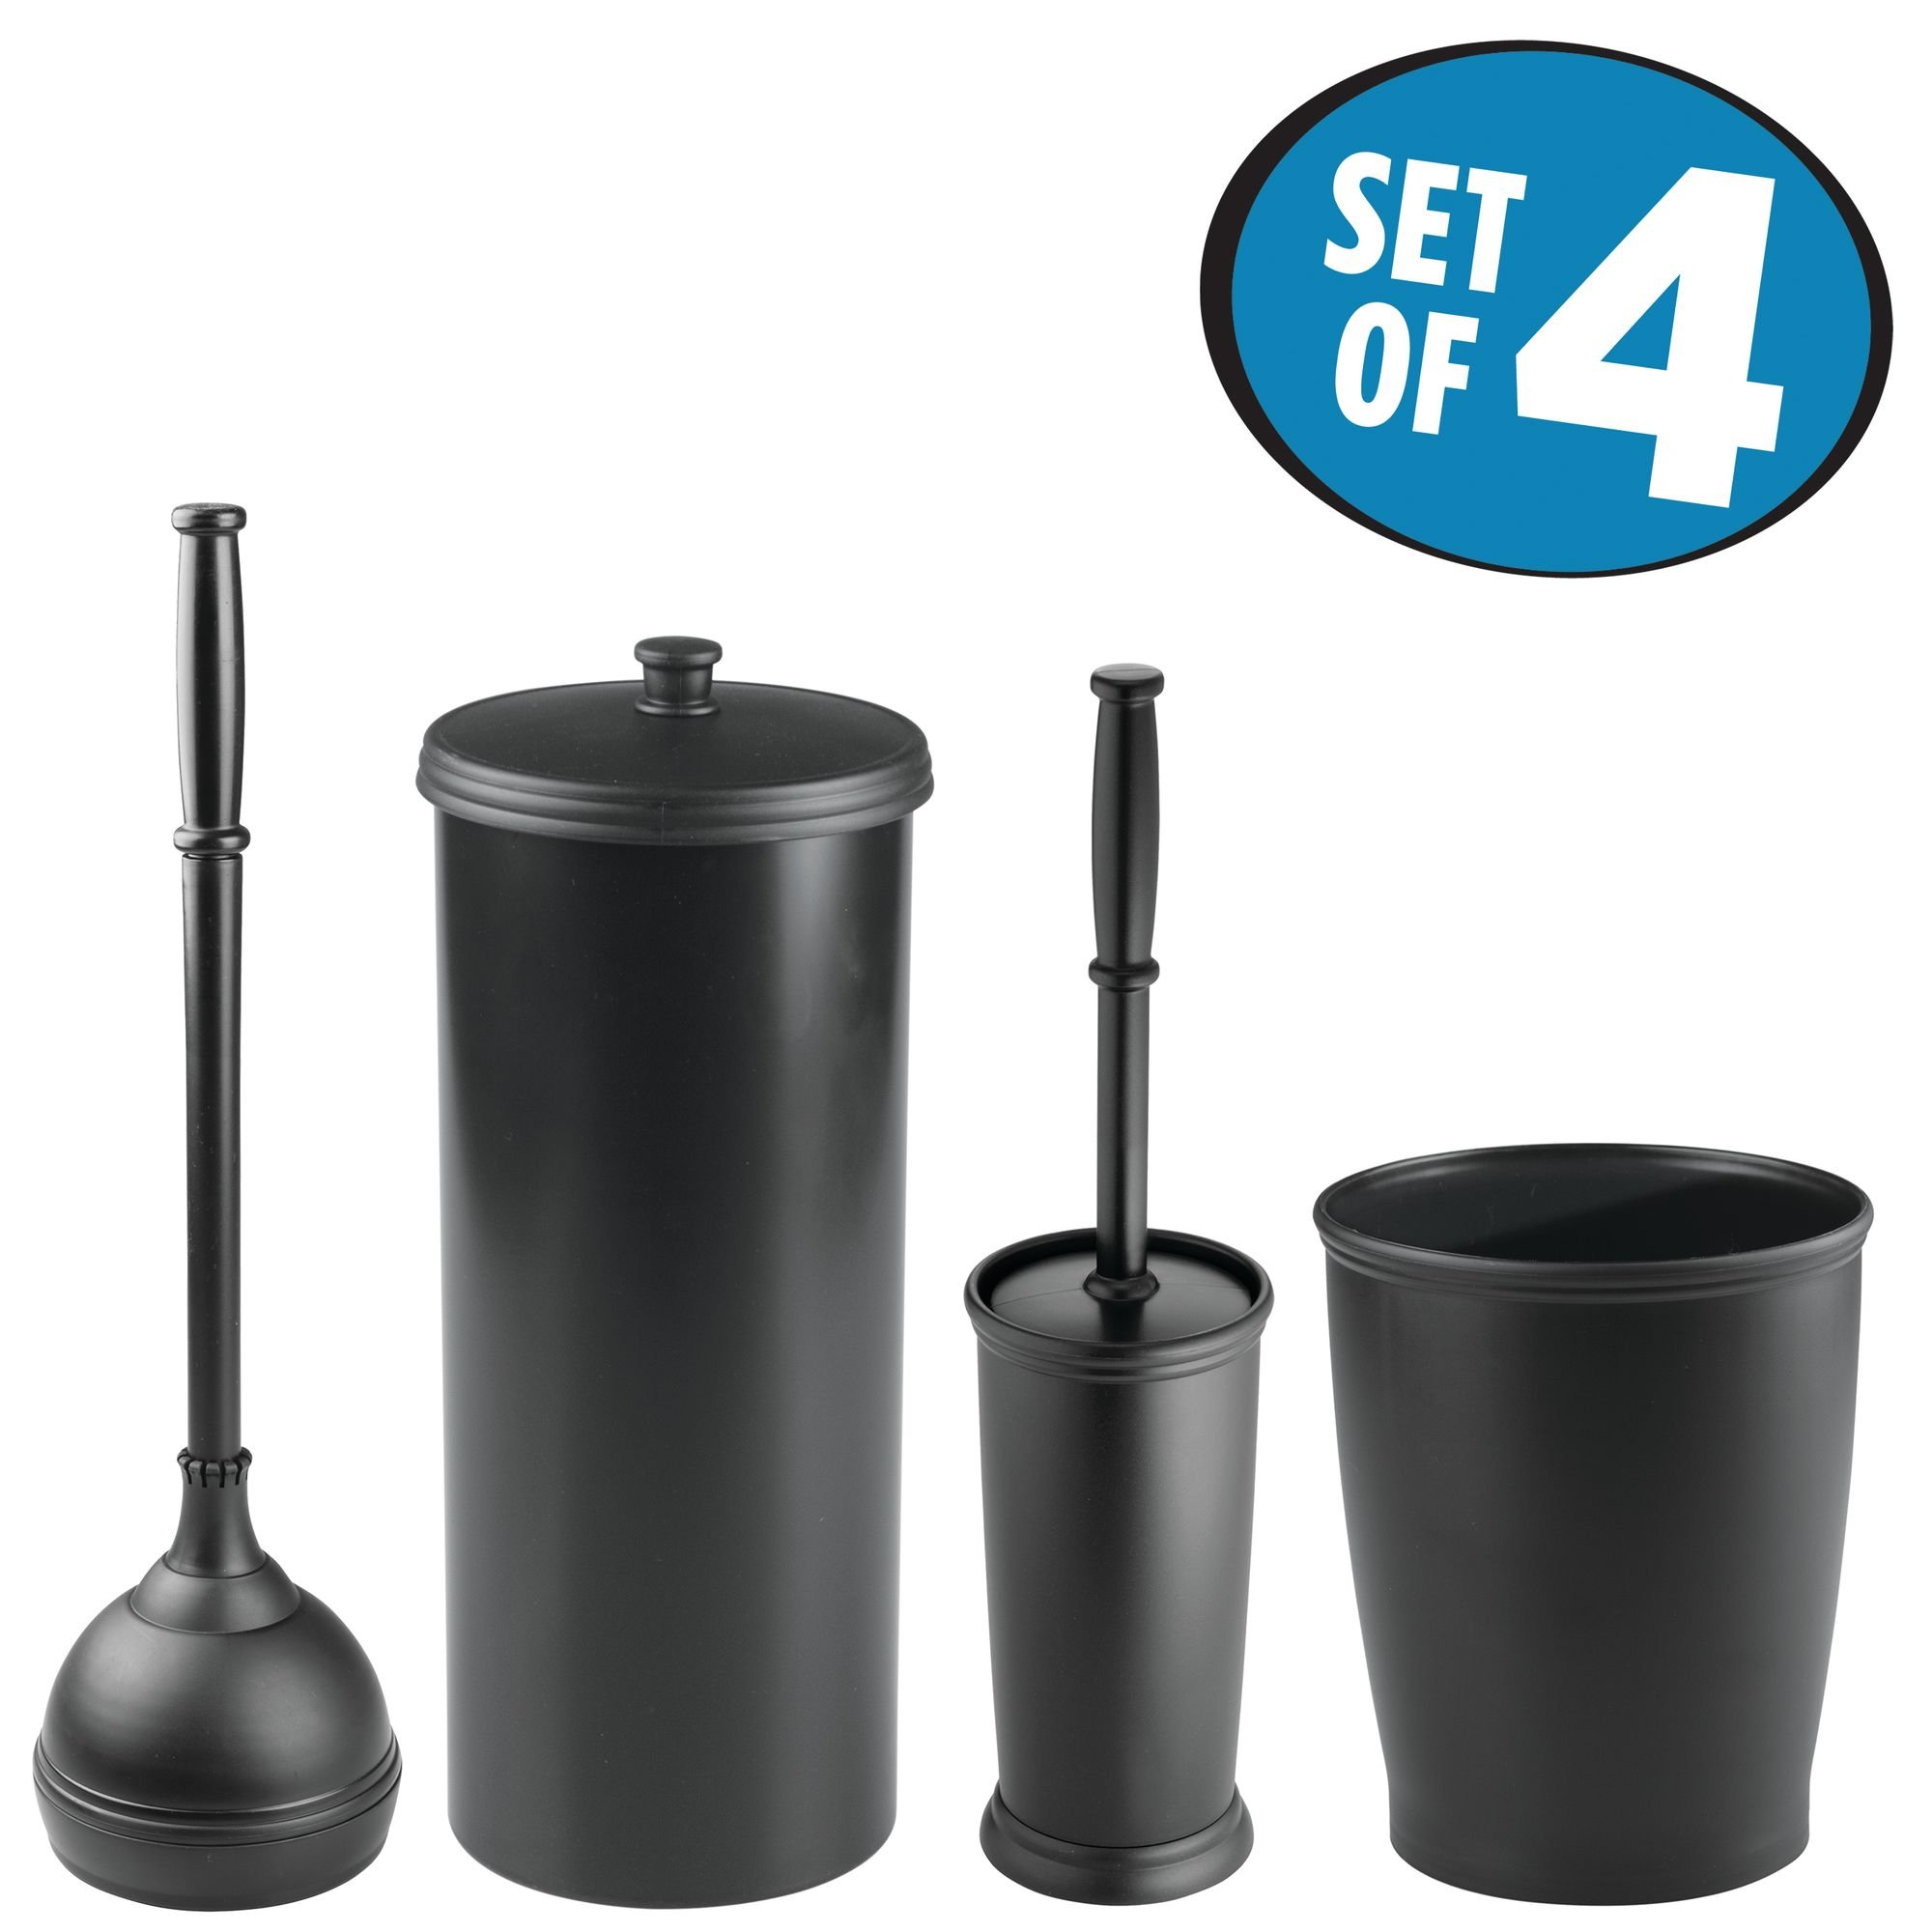 Cheap Bathroom Canister Sets, find Bathroom Canister Sets